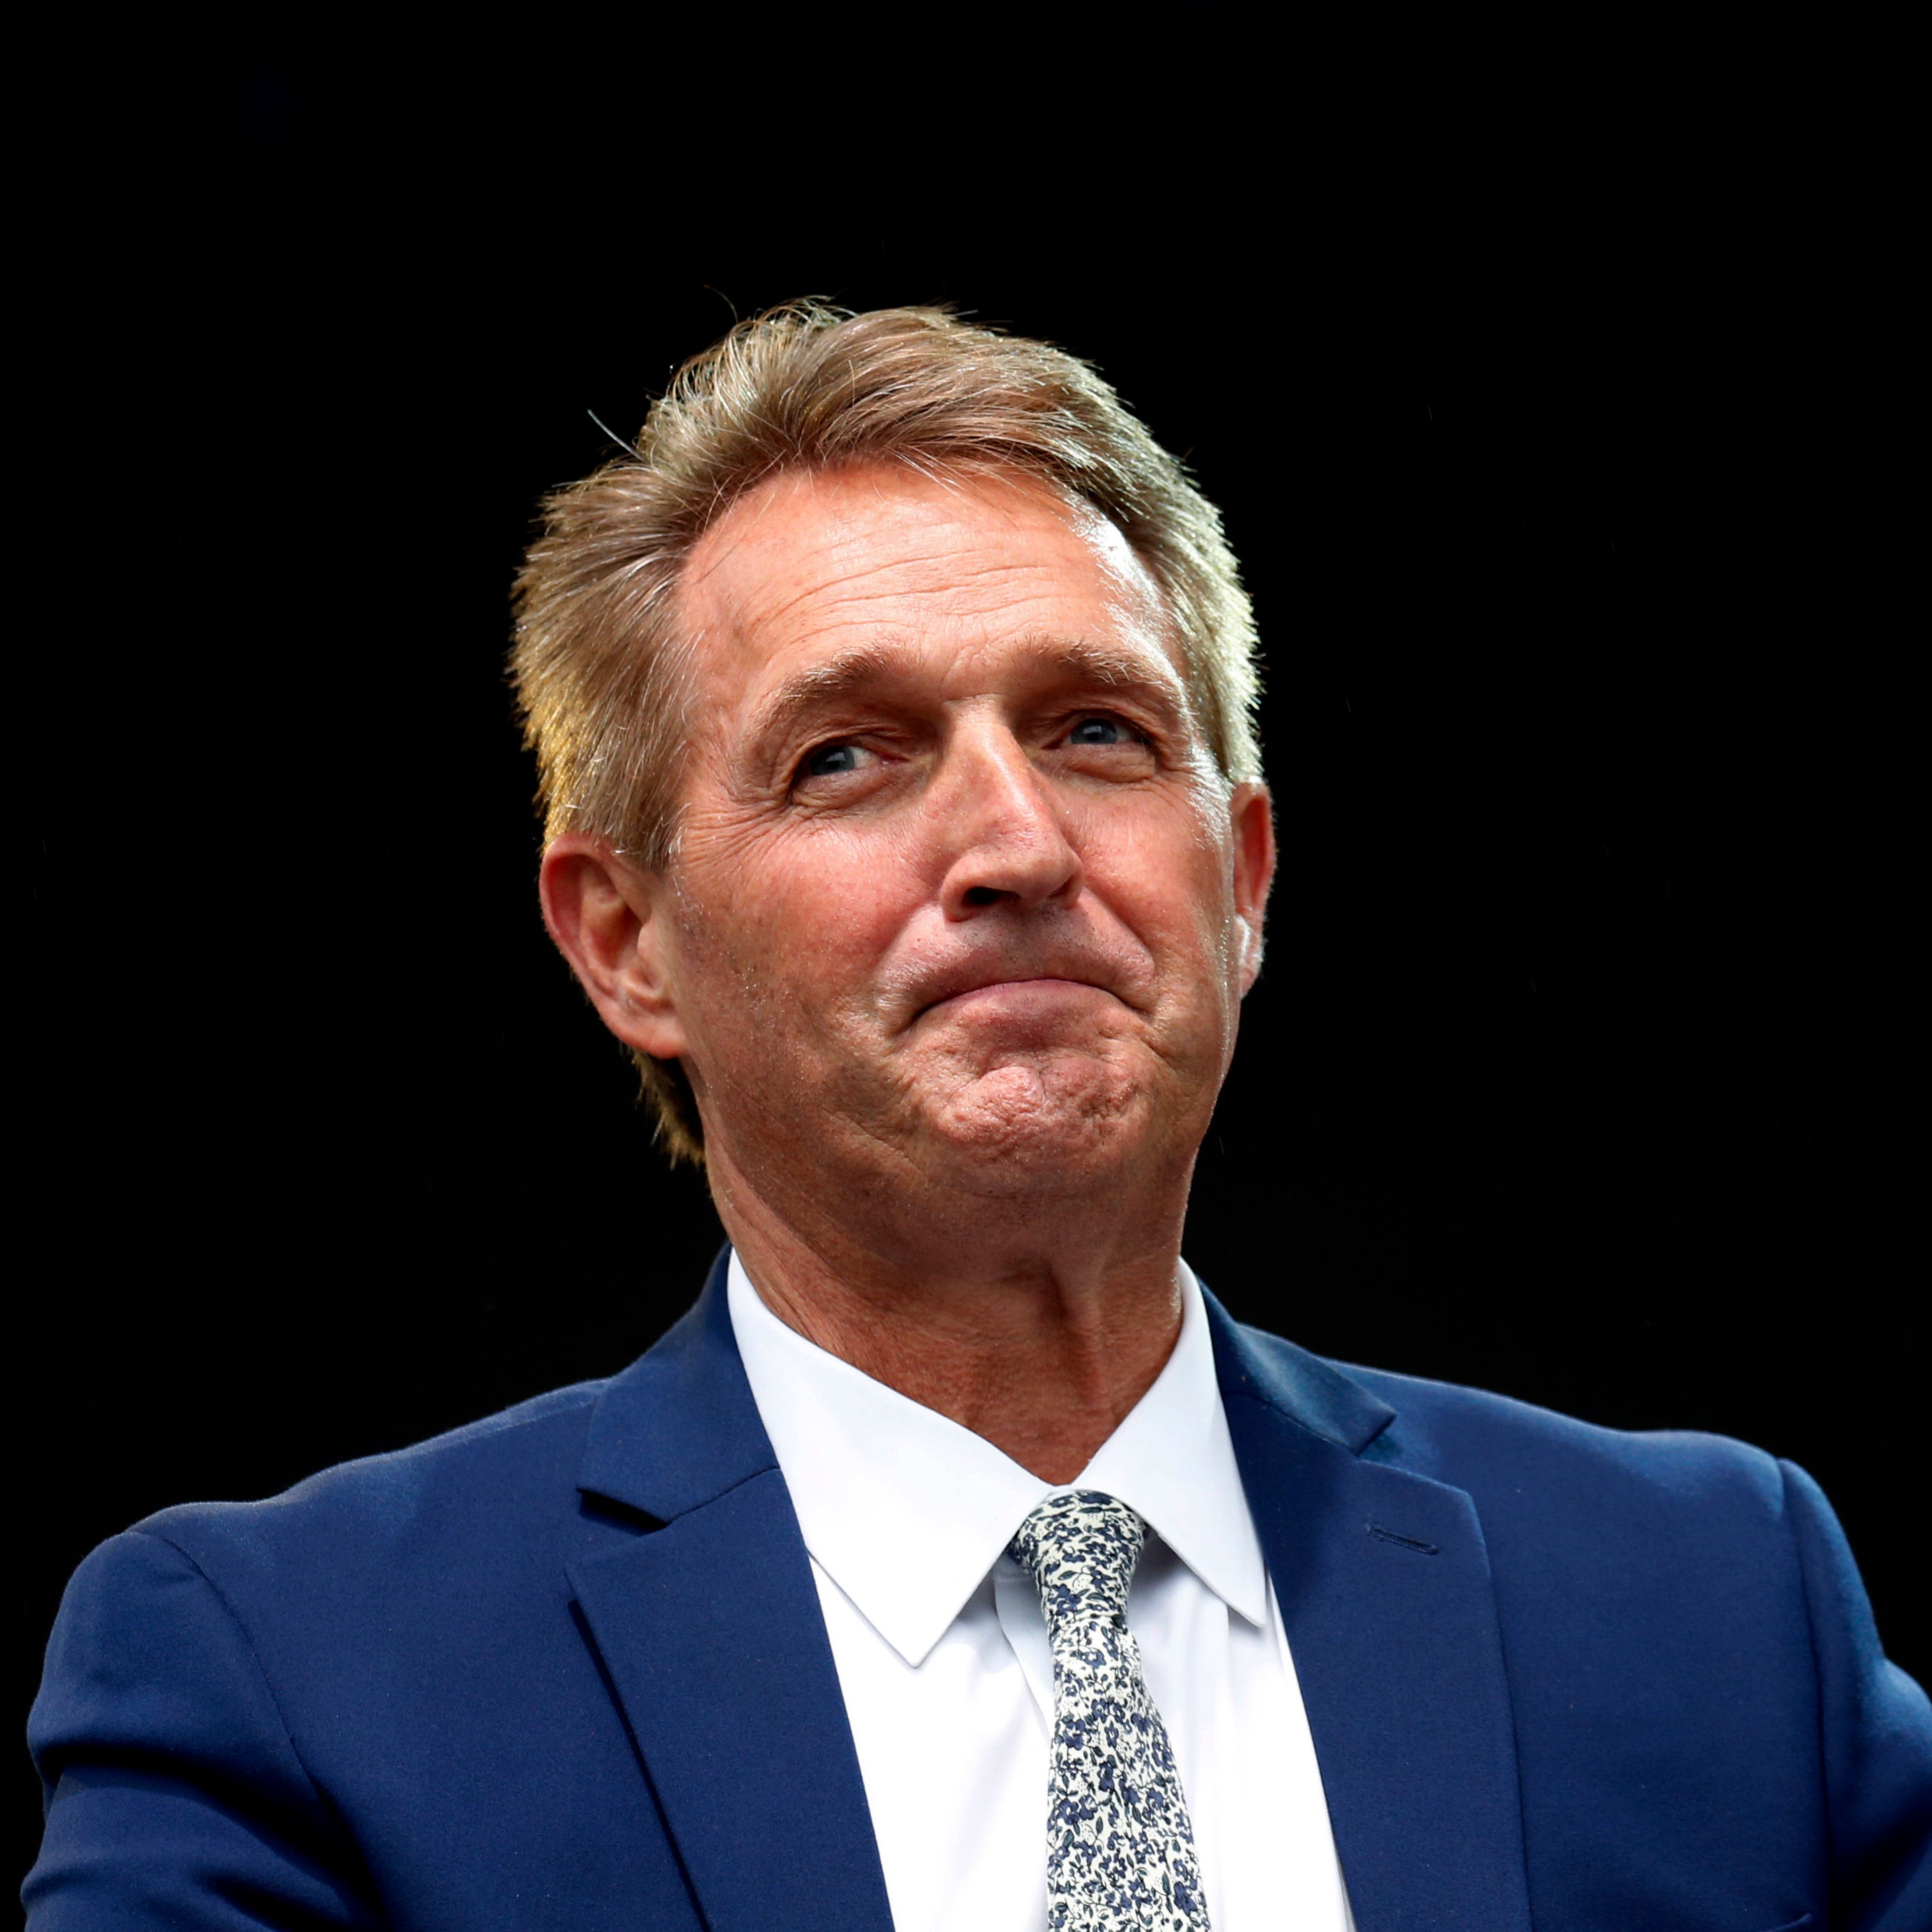 Former Sen. Jeff Flake discloses new details about threats to him and his family